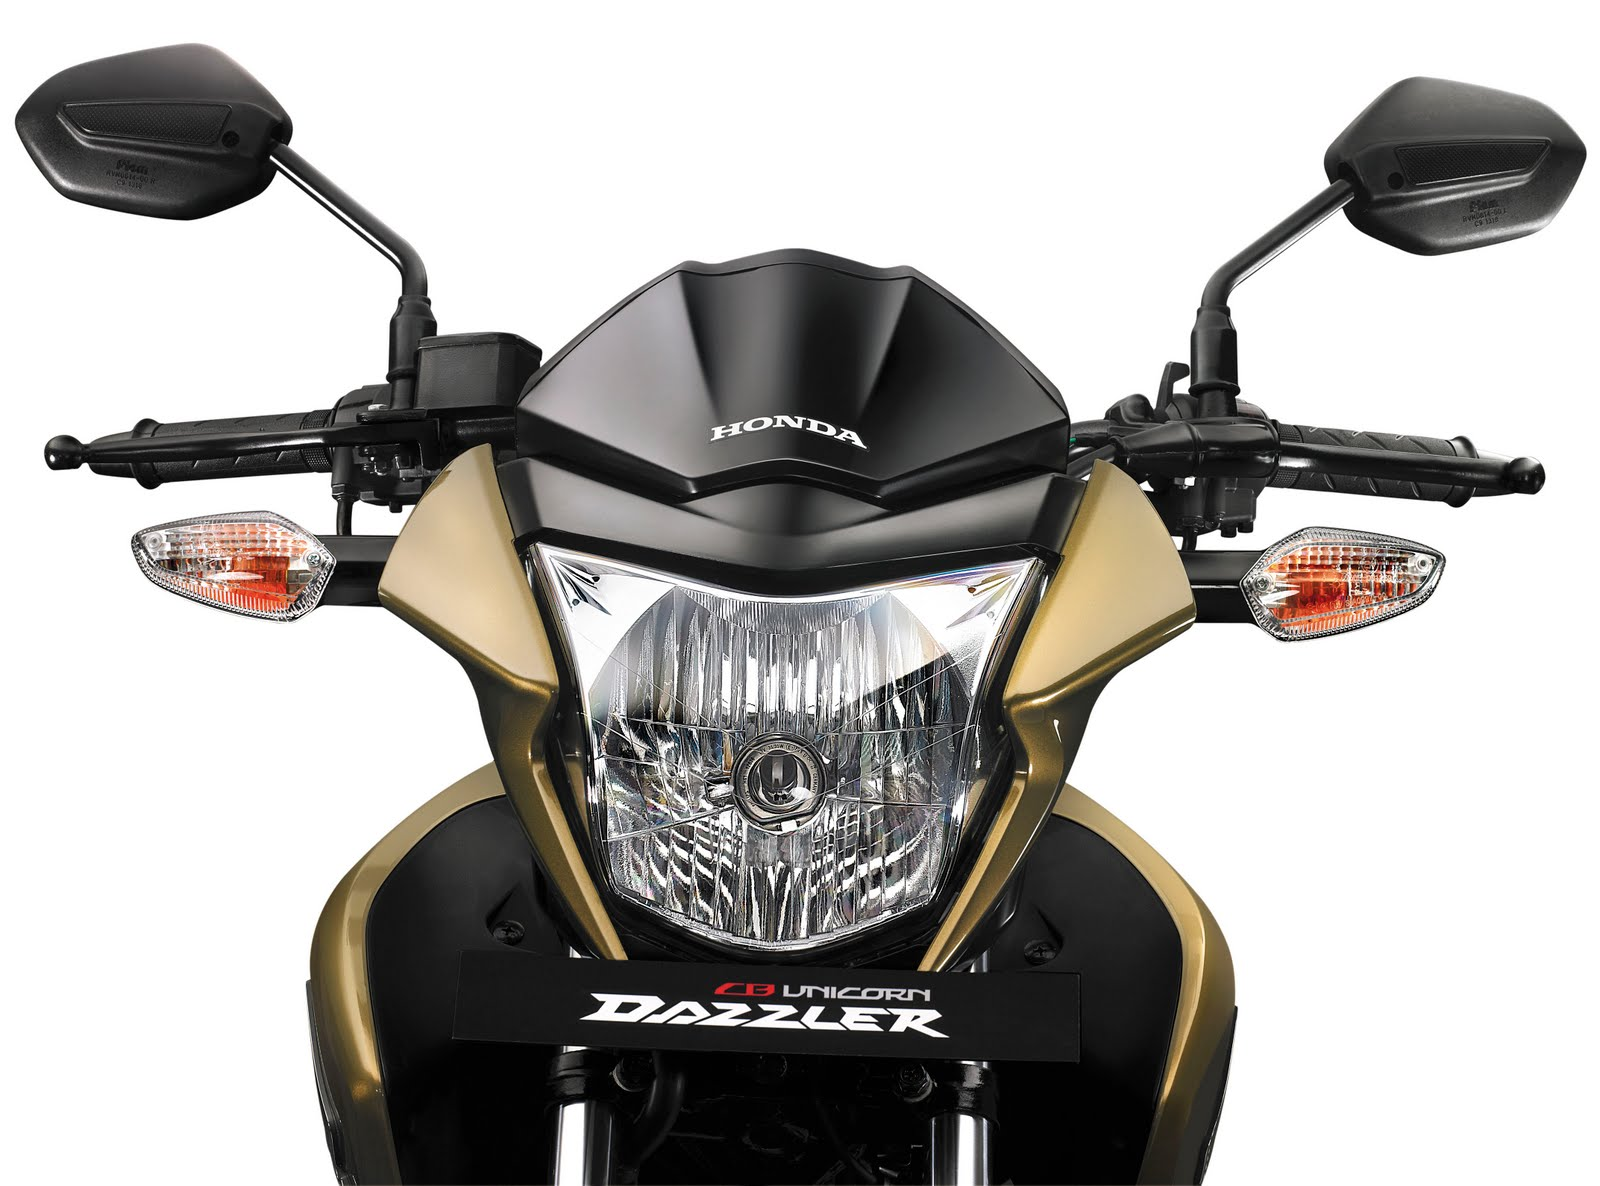 The honda cb unicorn dazzler is available in 4 colours armour gold metallic pearl siena red pearl nightstar black sword silver metallic